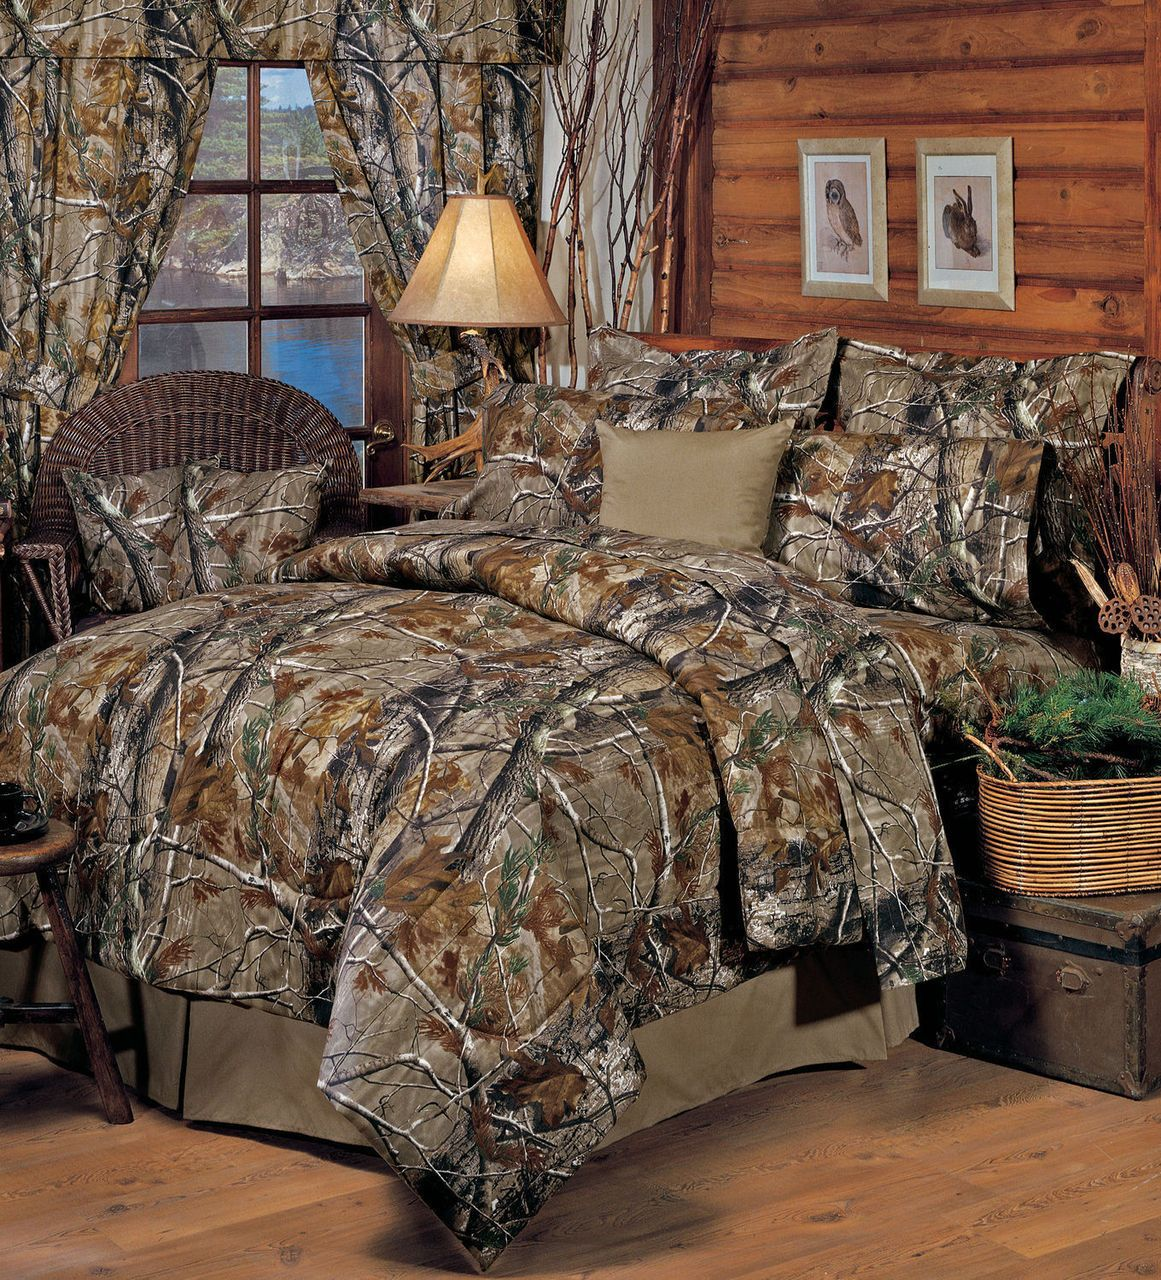 Discount Duos - Realtree All Purpose Camo Comforter Bedding Set  4pc Browning, $124.99 (http://www.discountduos.com/realtree-all-purpose-camo-comforter-bedding-set-4pc-browning/)